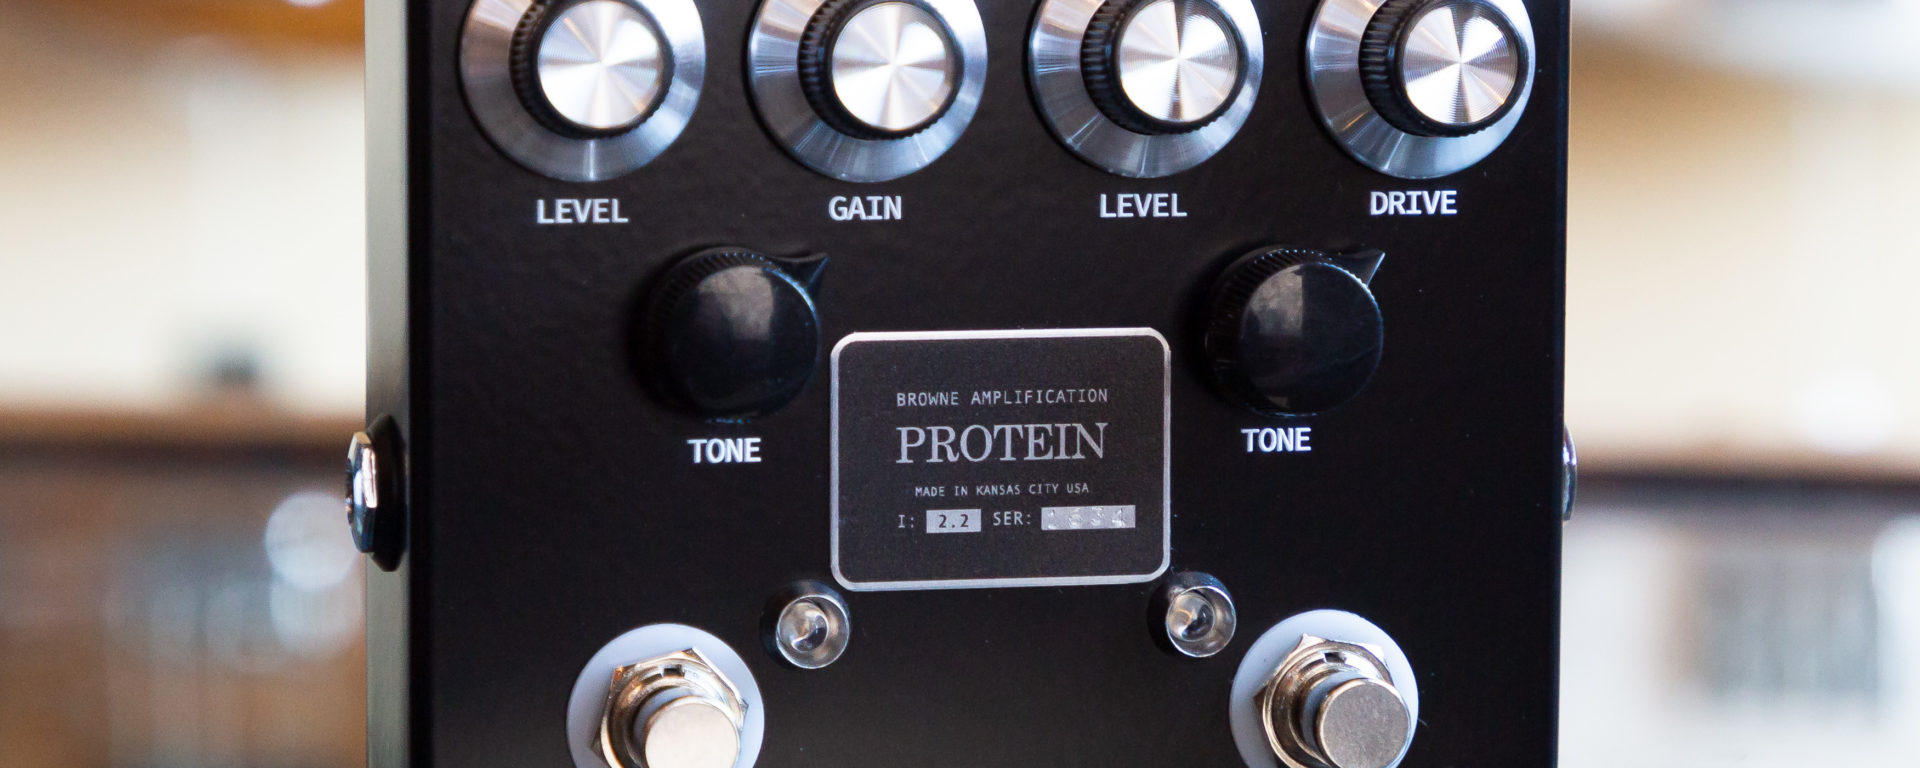 Browne Amplification - Protein Dual Overdrive - Black